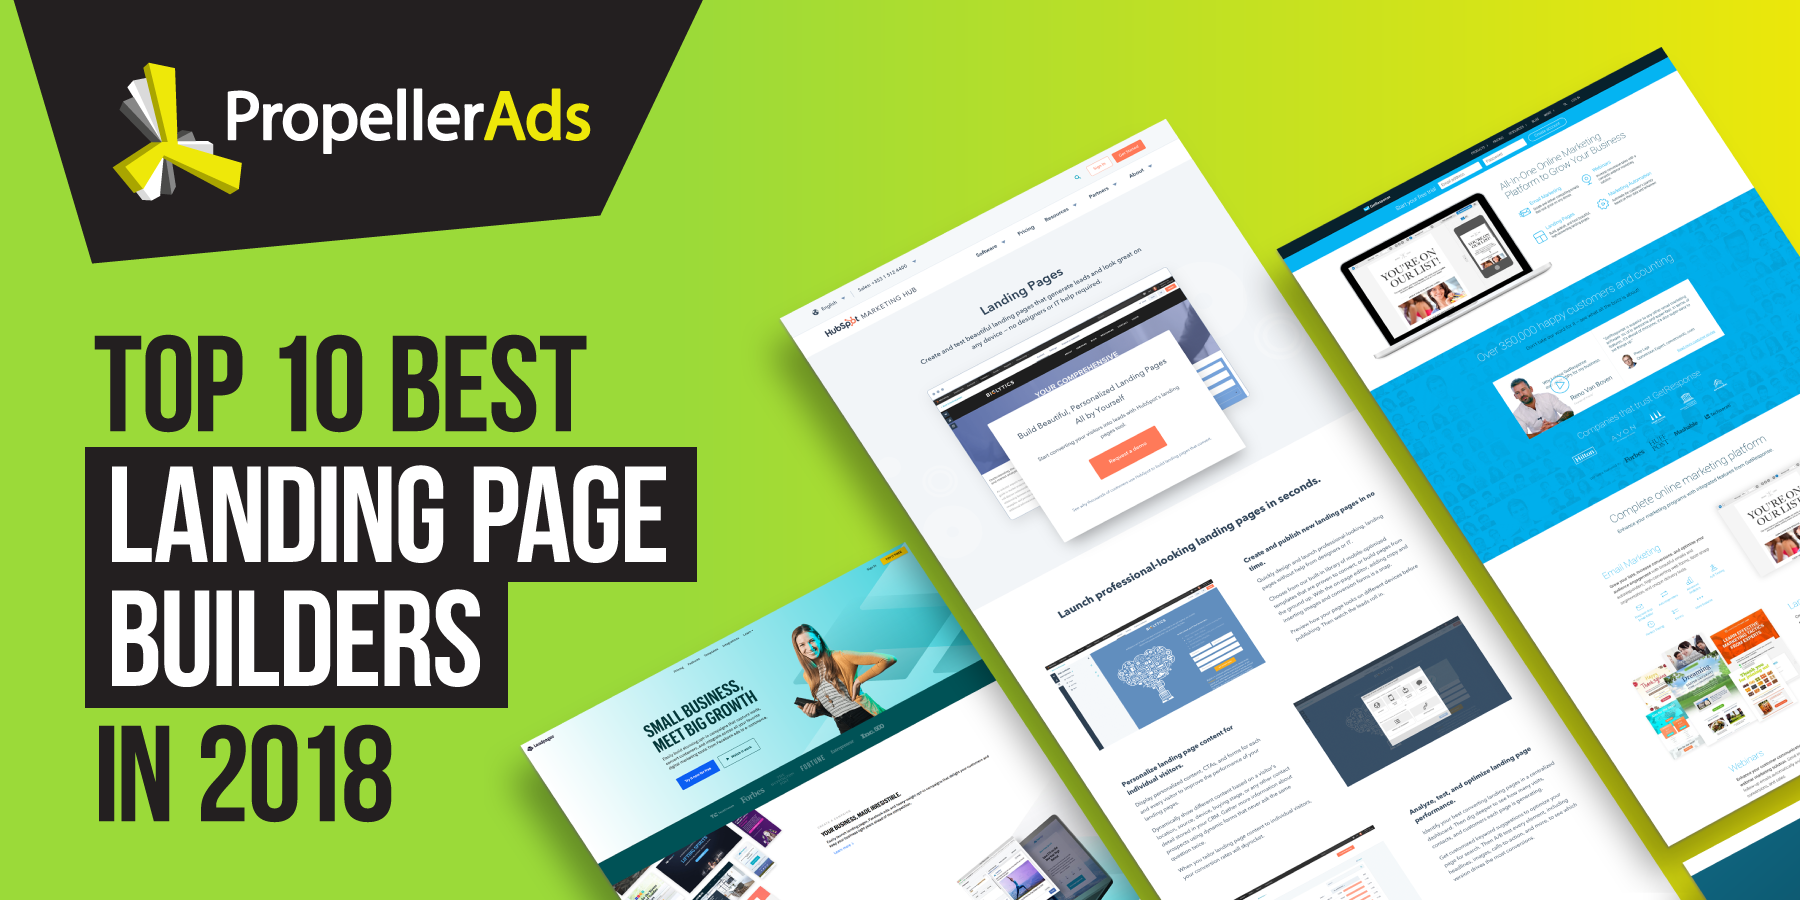 Read more: Our Picks For The Top 10 Best Landing Page Builders in 2018